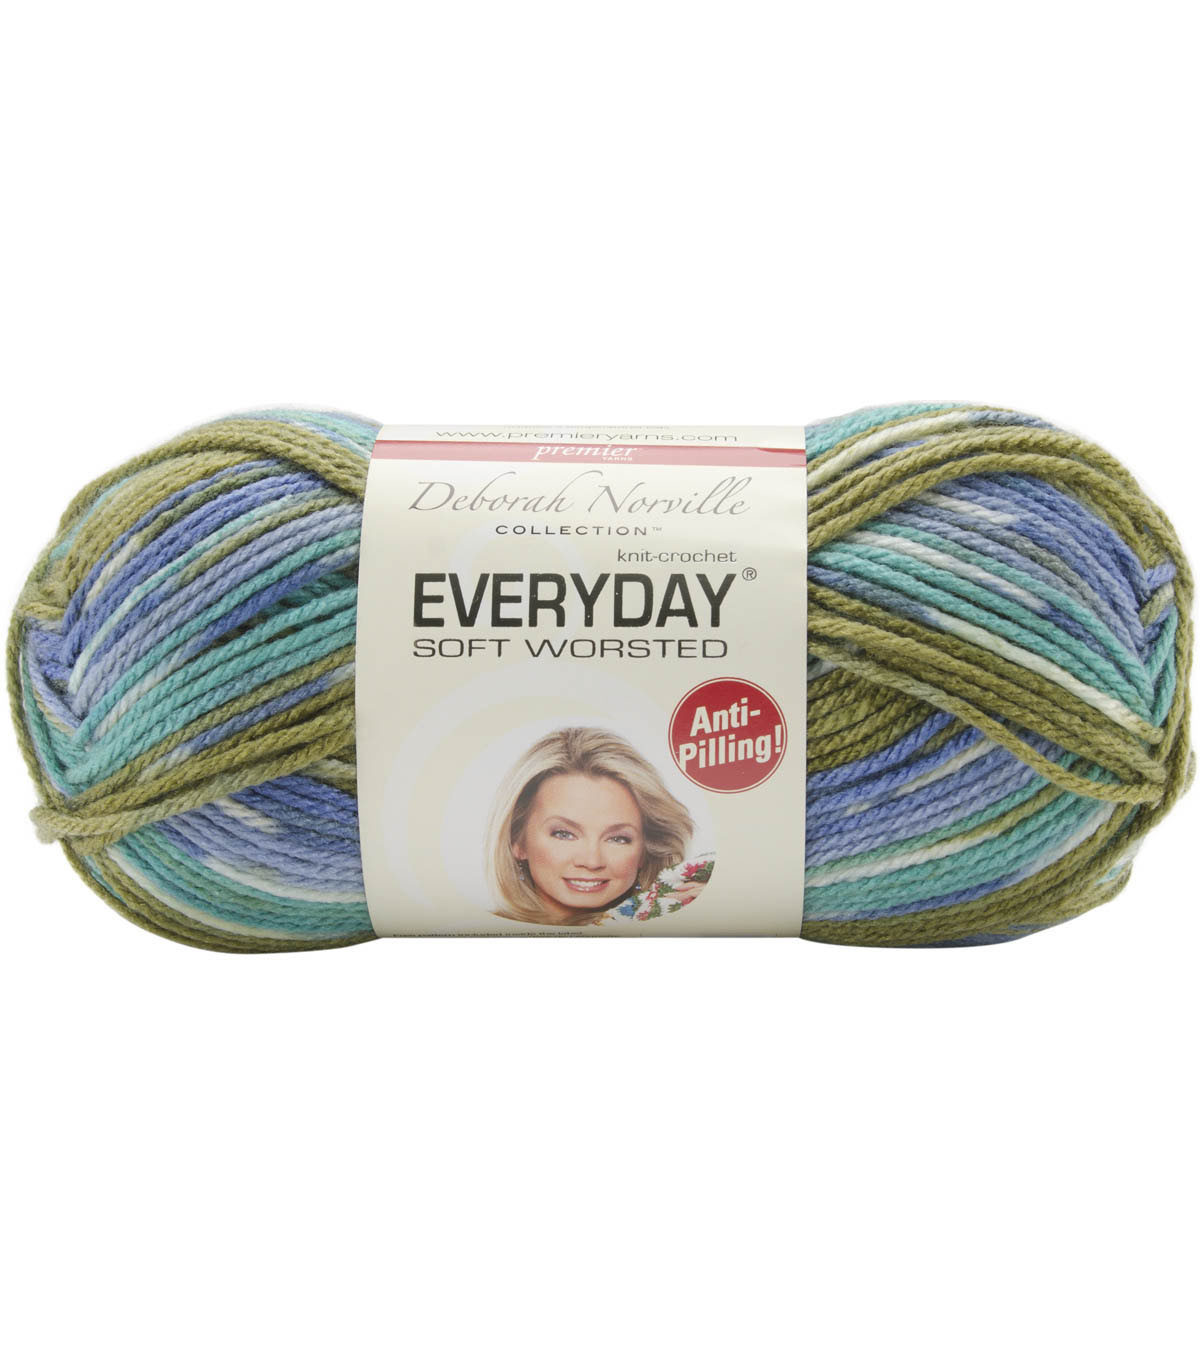 Deborah norville Yarn Lovely Deborah norville Collection Everyday Print Yarn at Joann Of Amazing 50 Pics Deborah norville Yarn